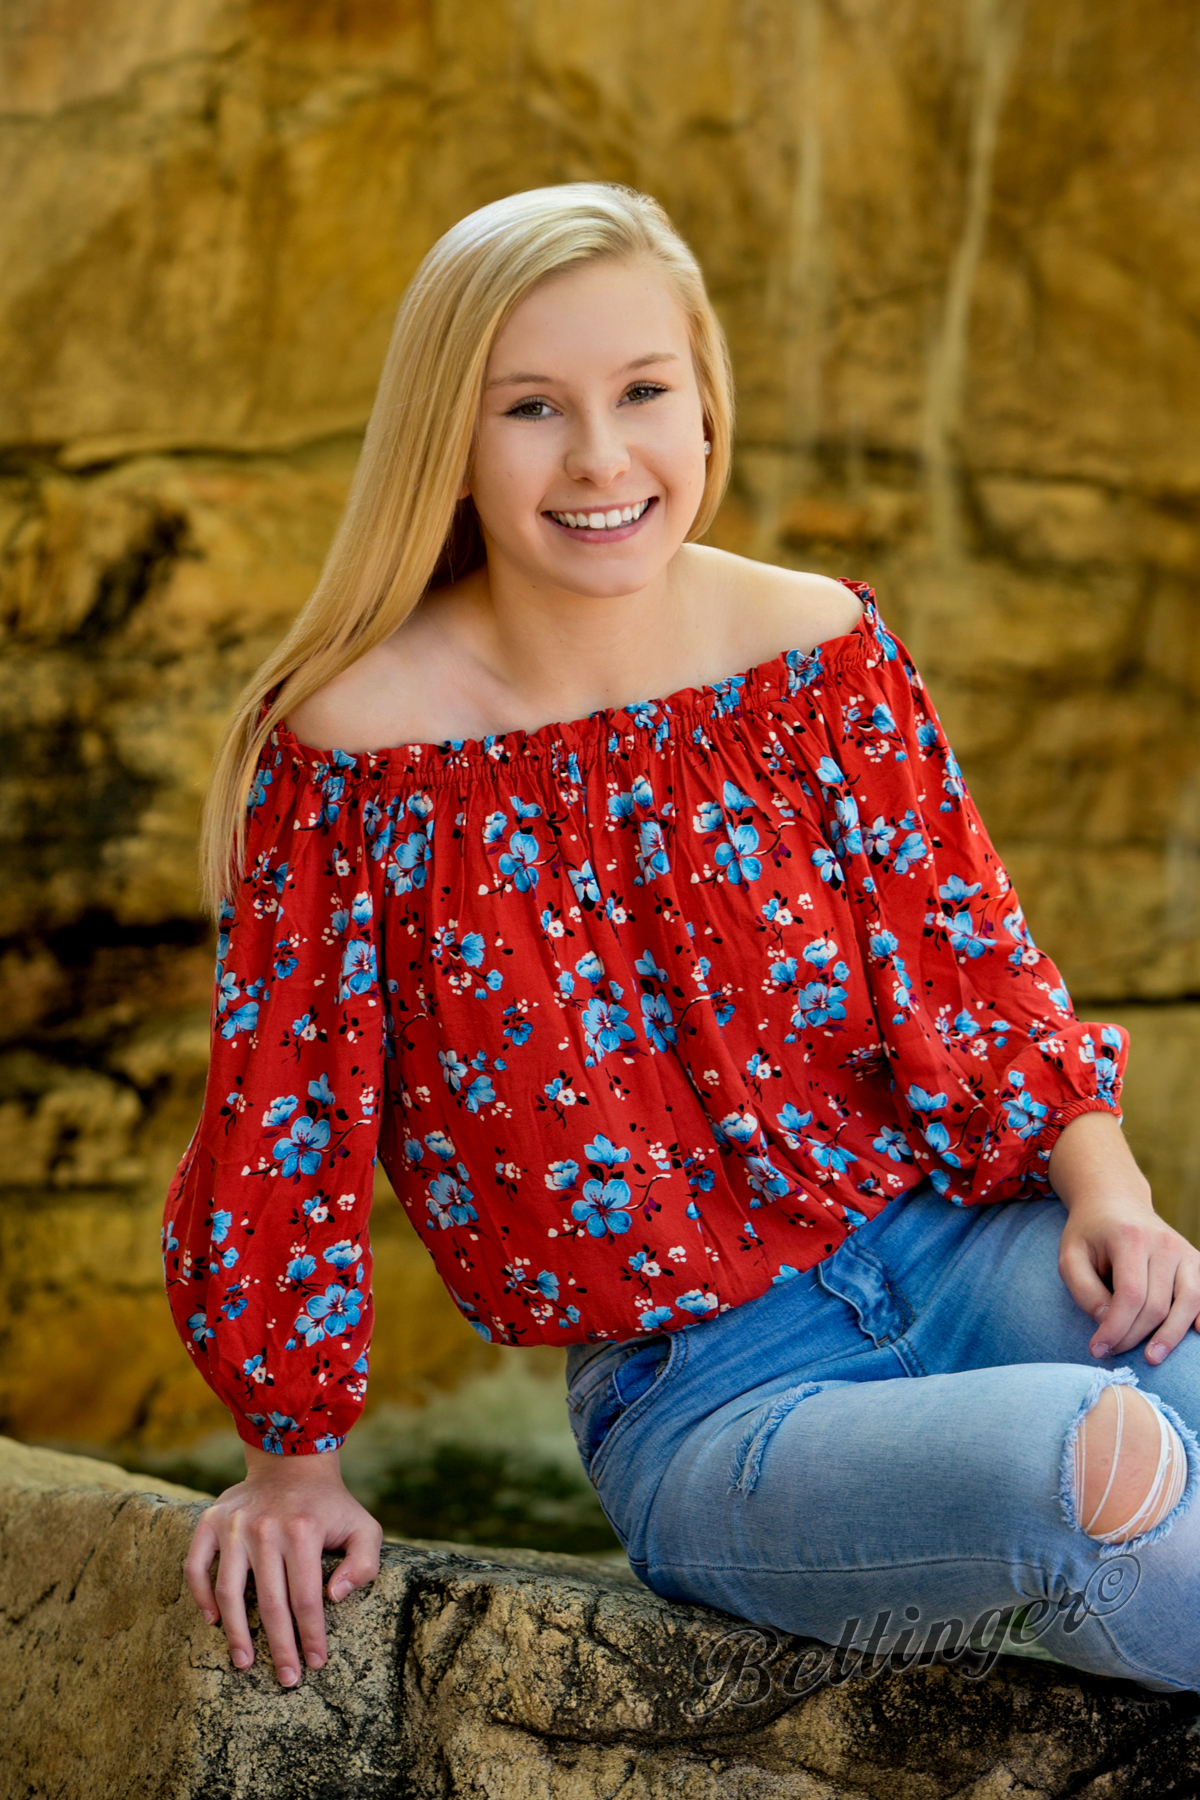 - Allie is currently working at Starbucks and is a senior at Littleton High School.